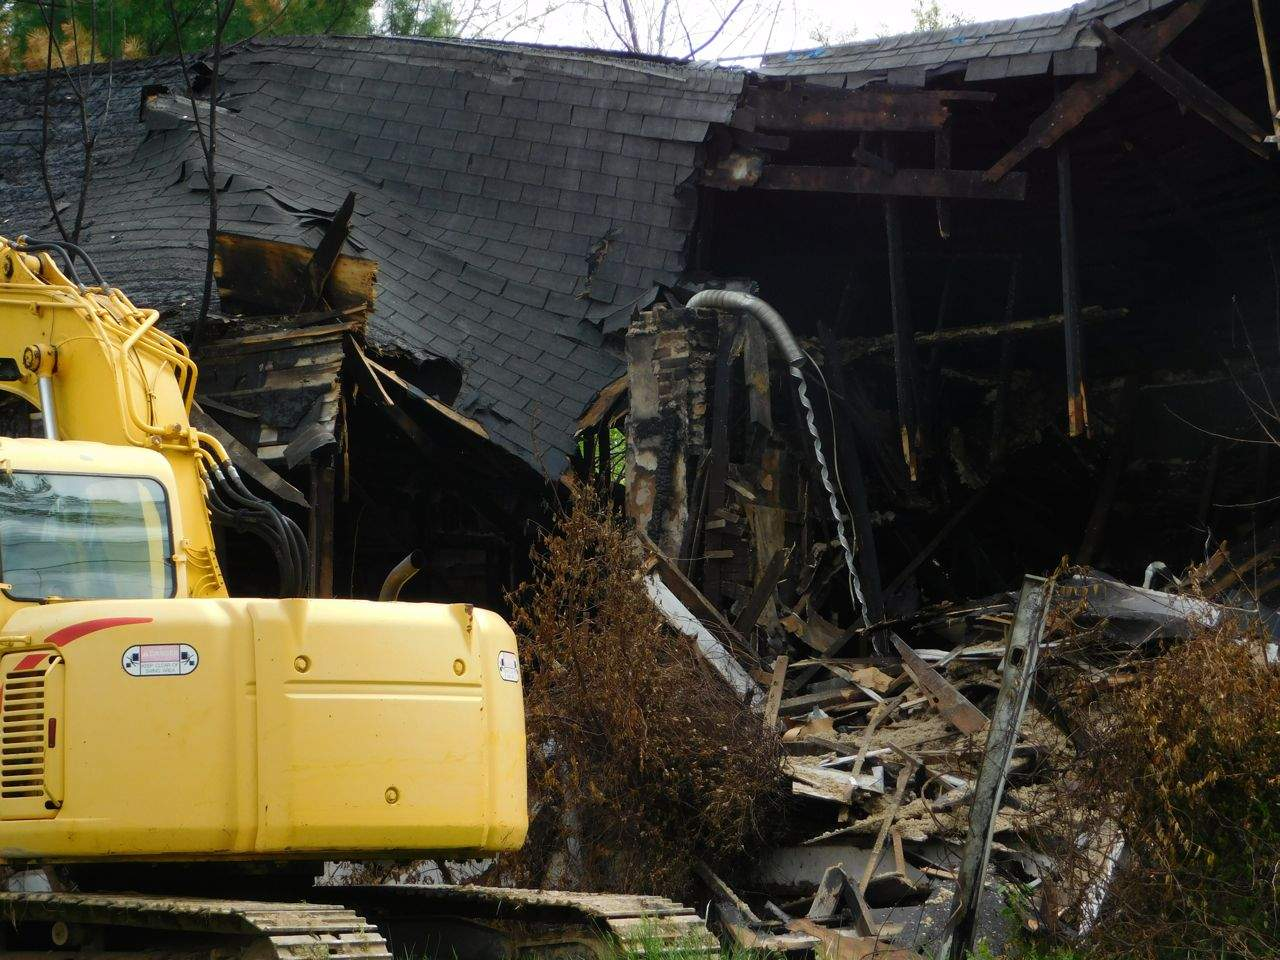 After pumping water from the basement during the morning, demolition was in full swing by early afternoon on Wednesday. Garavalia said the work was bid on an emergency basis, citing safety concerns with the structure. A & P Excavation is completing the work.